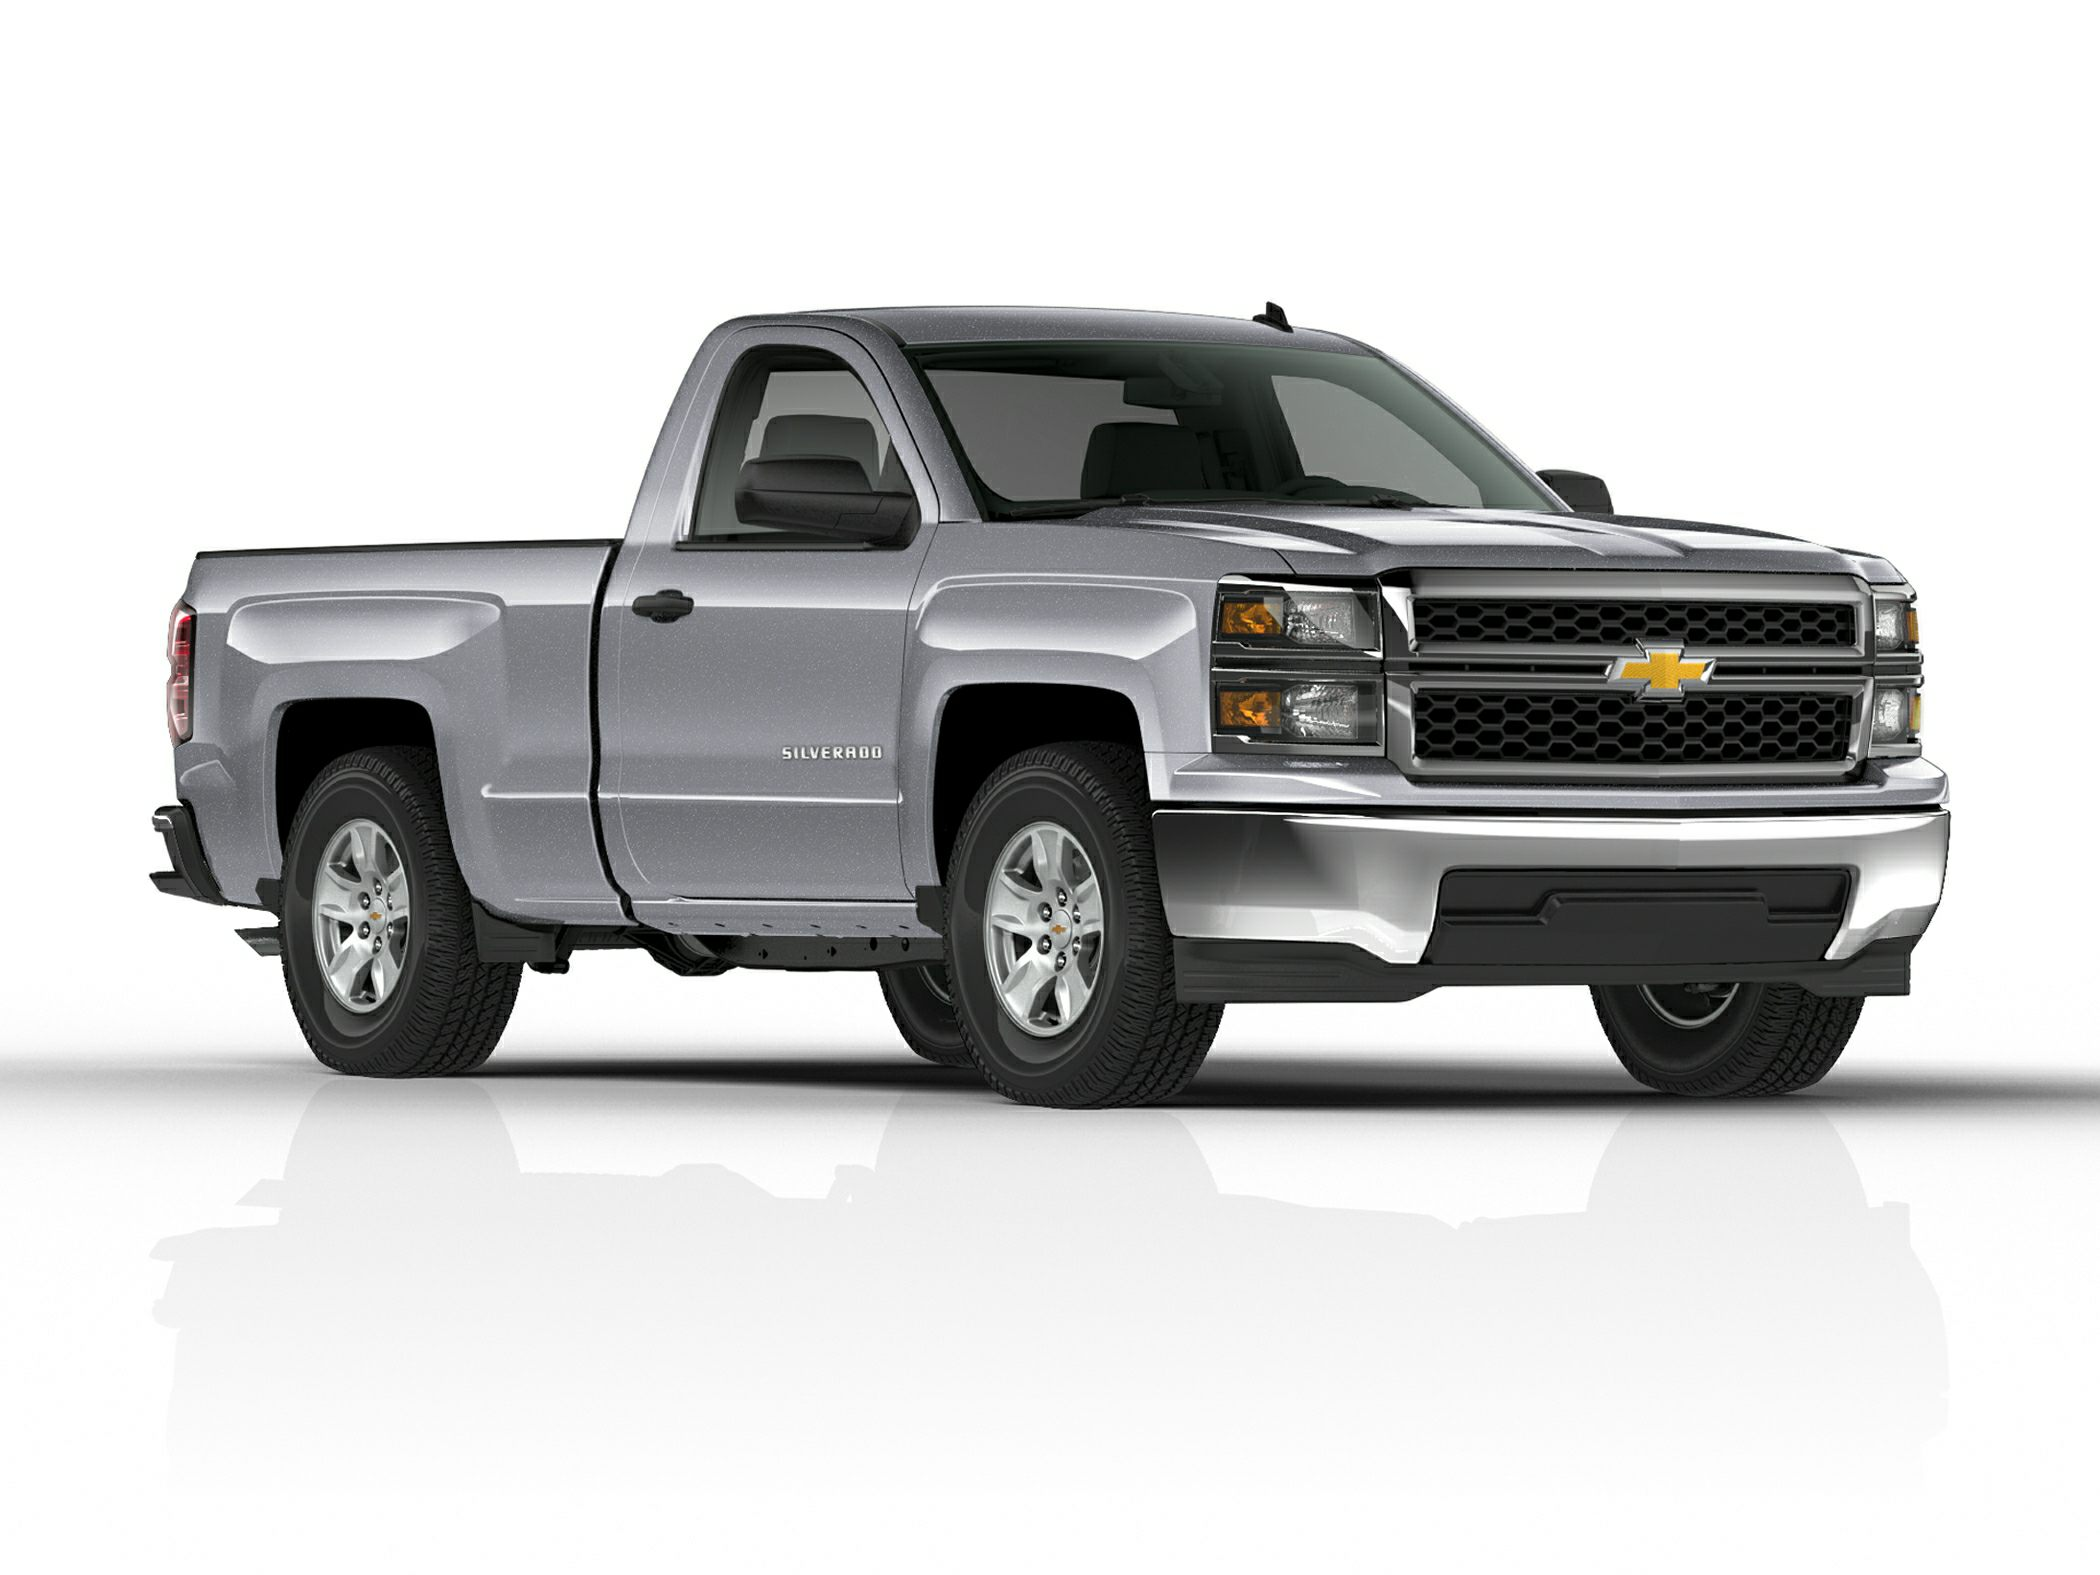 Chevrolet Silverado 1500 Regular Cab Specs Amp Photos 2013